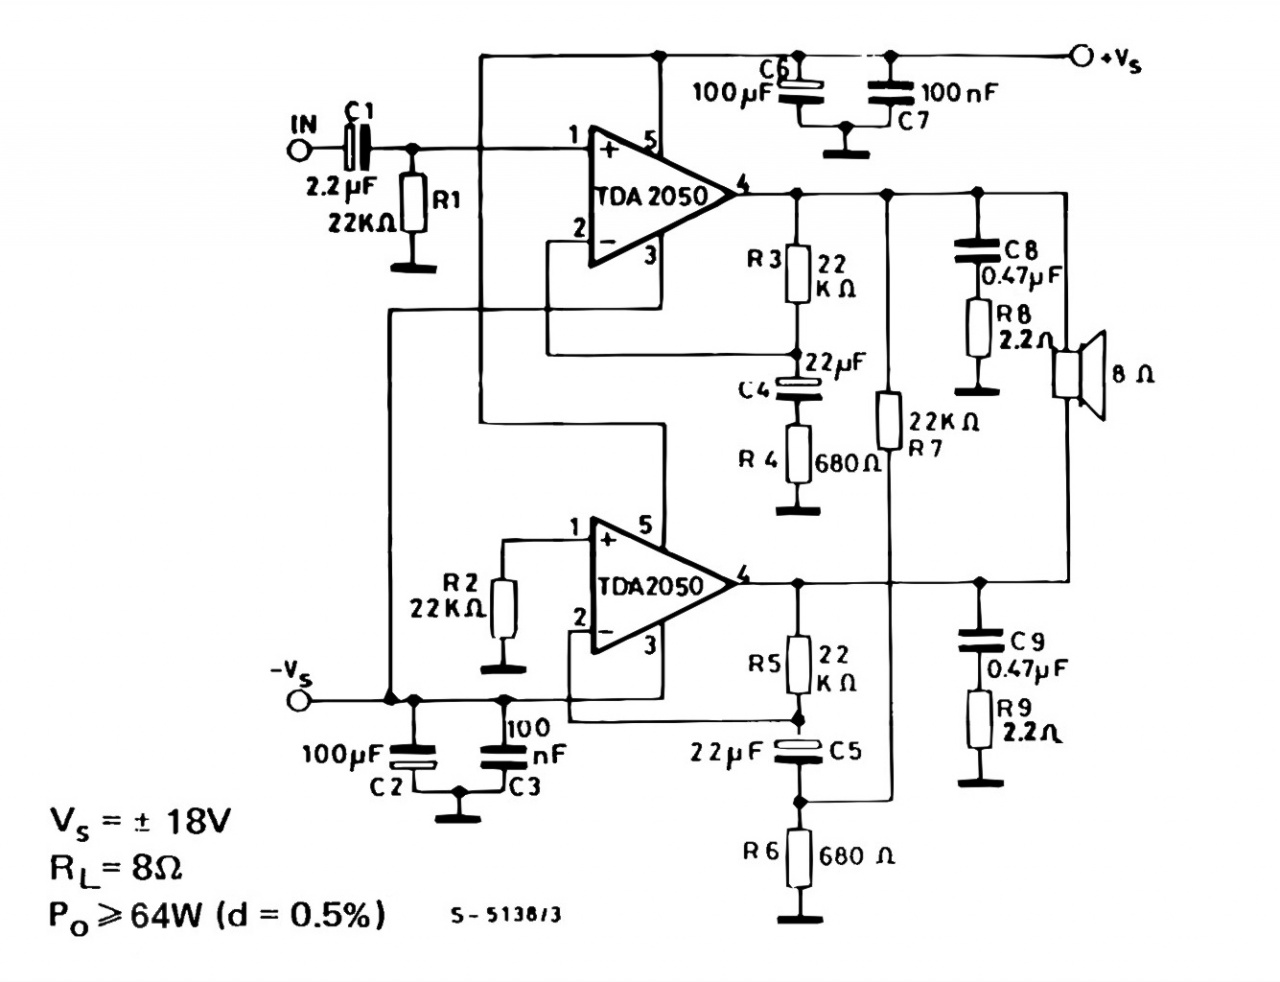 tda2050 bridge amplifier circuit diagram pdf